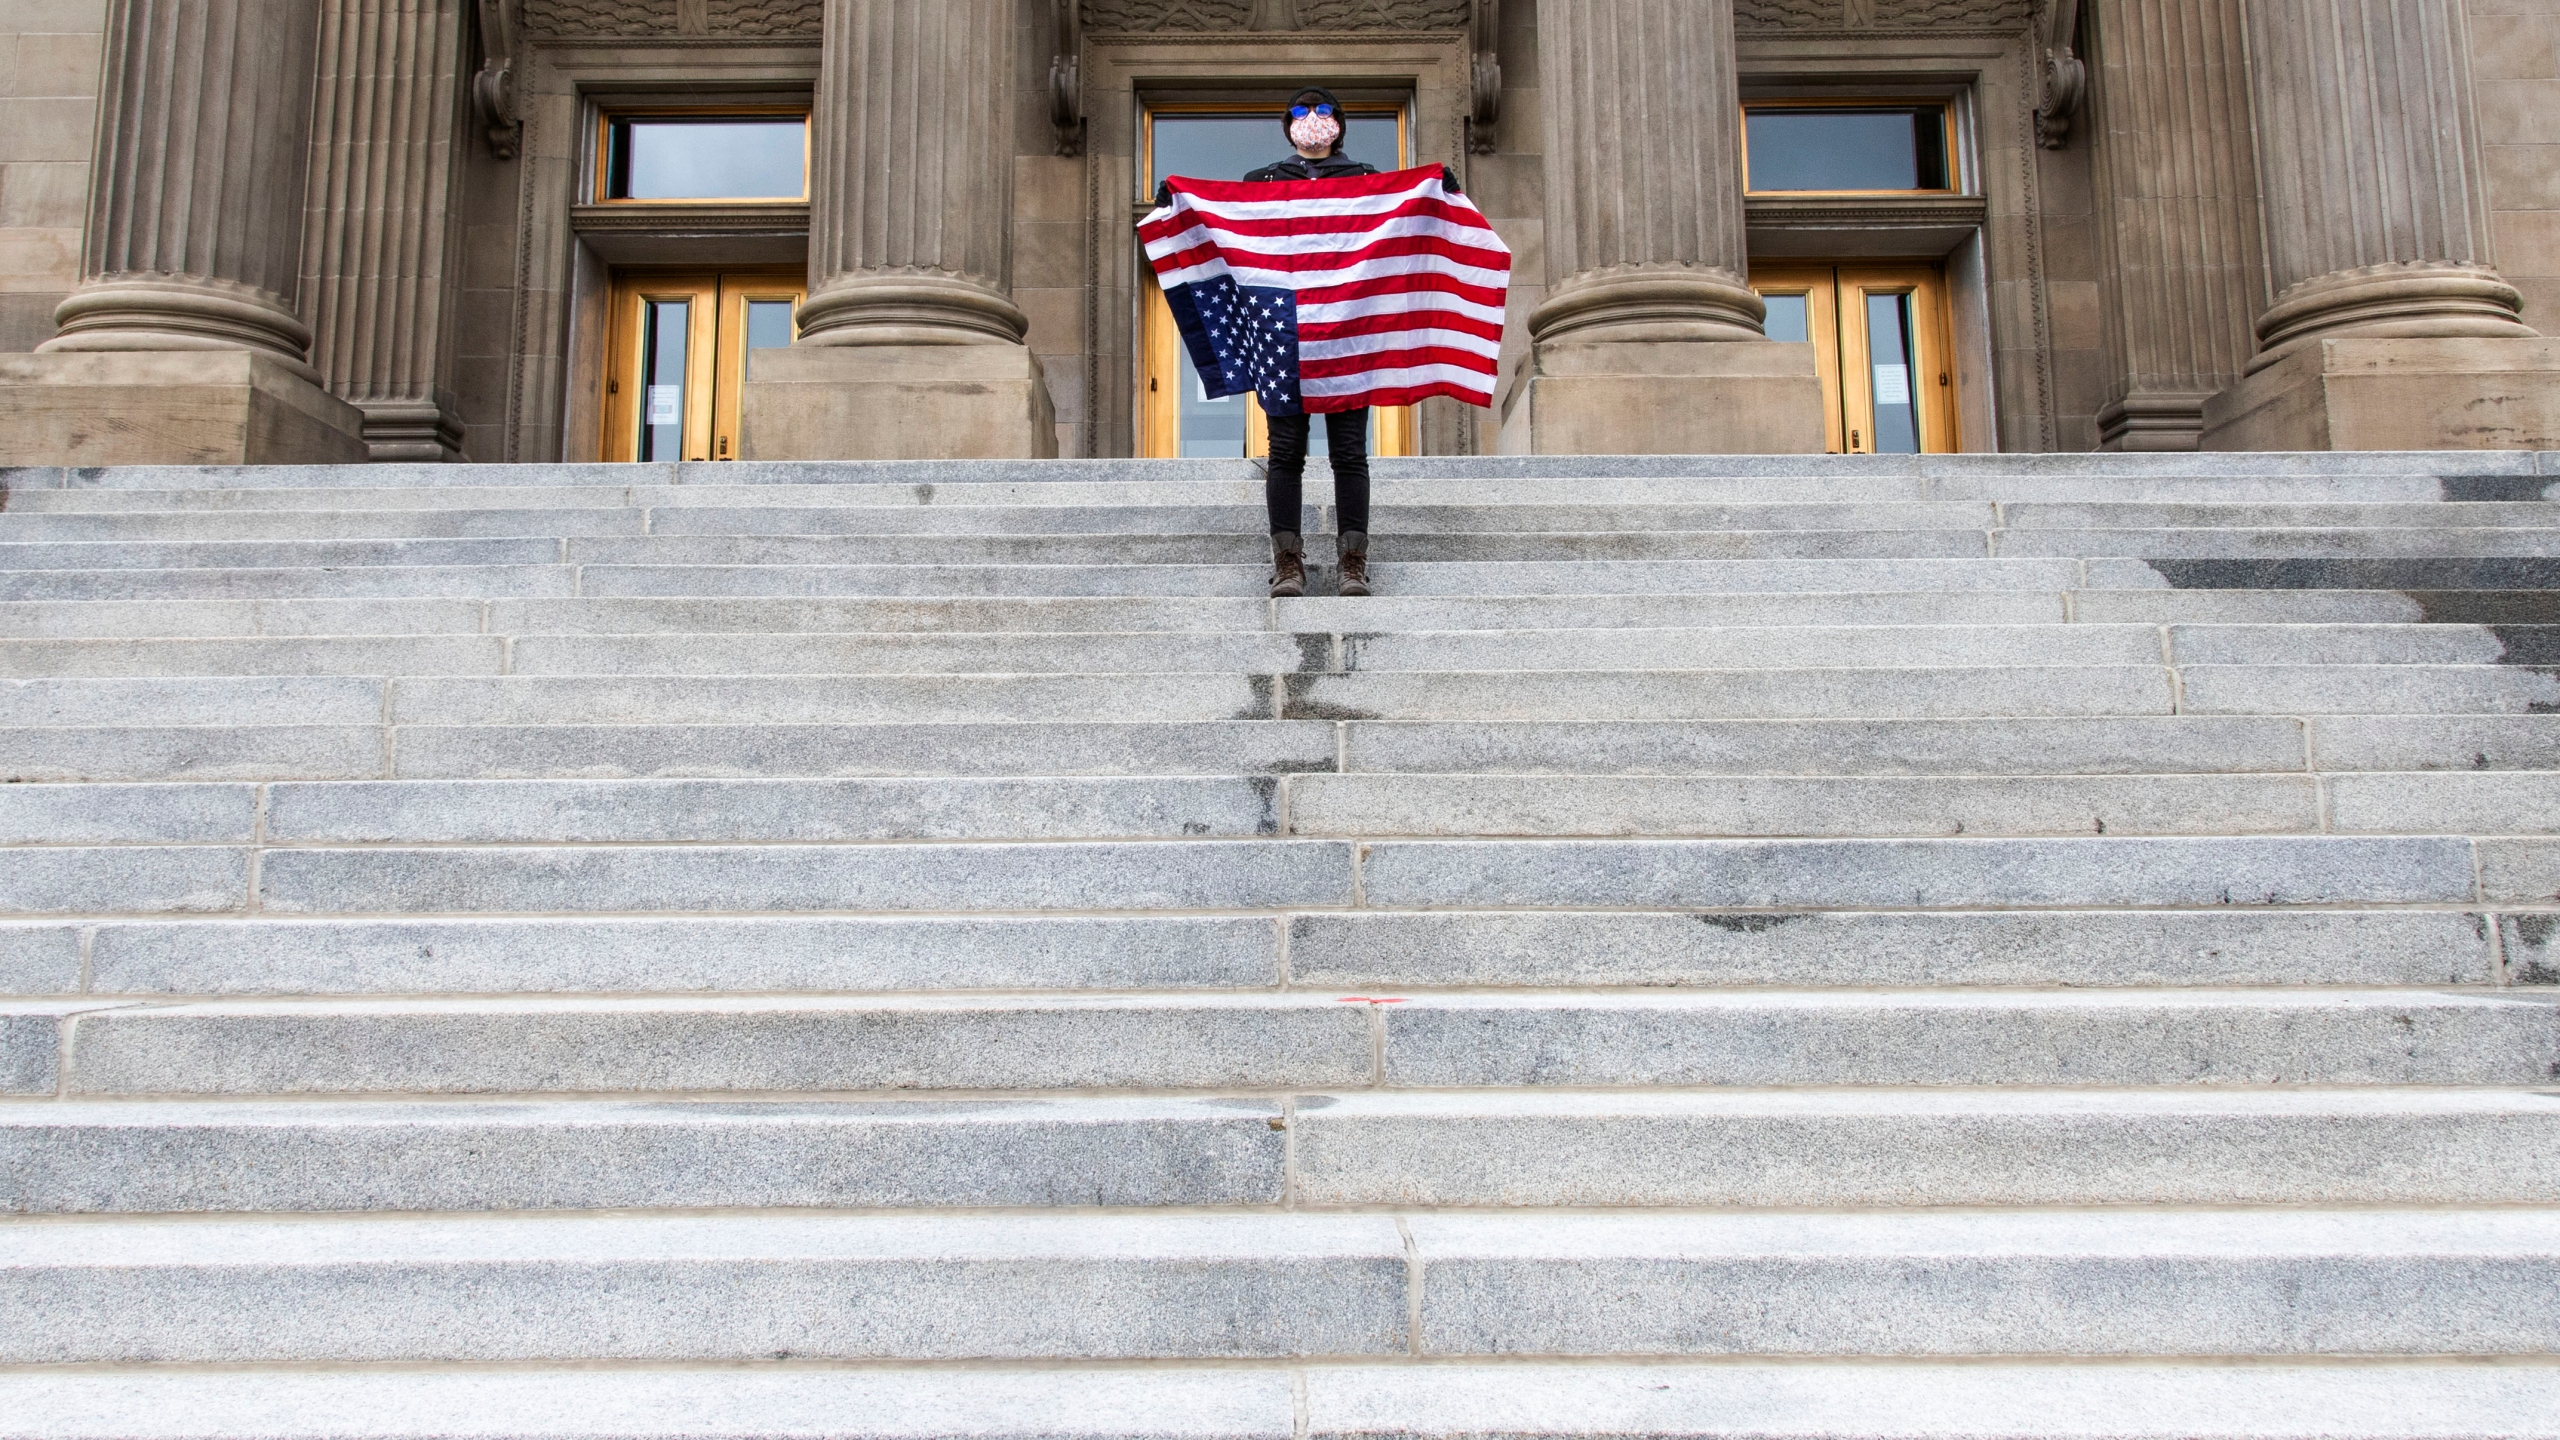 """In this April 26, 2021, file photo, a student holding a U.S. flag upside down stands atop the steps at the Idaho Capitol building in Boise. The Idaho Senate has approved legislation aimed at preventing schools and universities from """"indoctrinating"""" students through teaching critical race theory, which examines the ways in which race and racism influence American politics, culture and the law. (Darin Oswald/Idaho Statesman via AP, File)"""